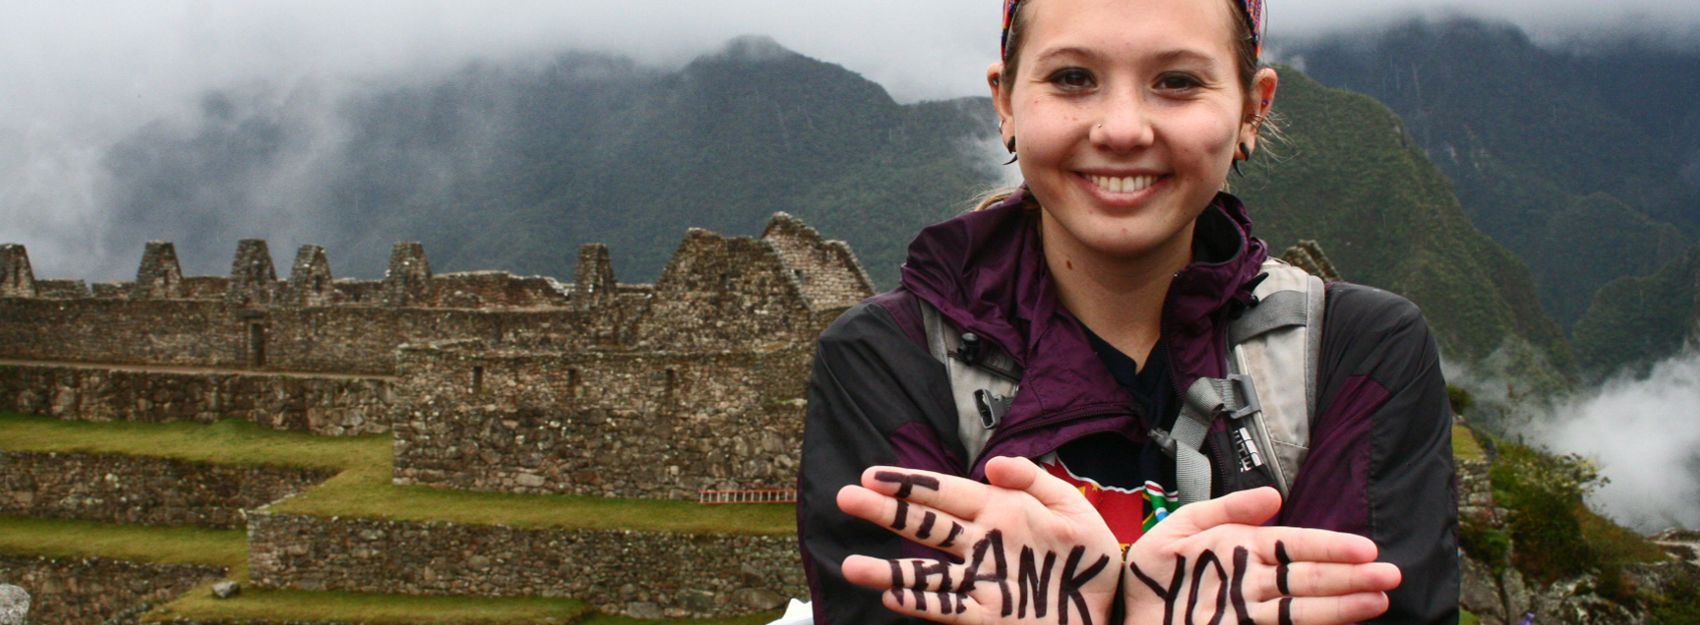 student hiking with thank you written on hands